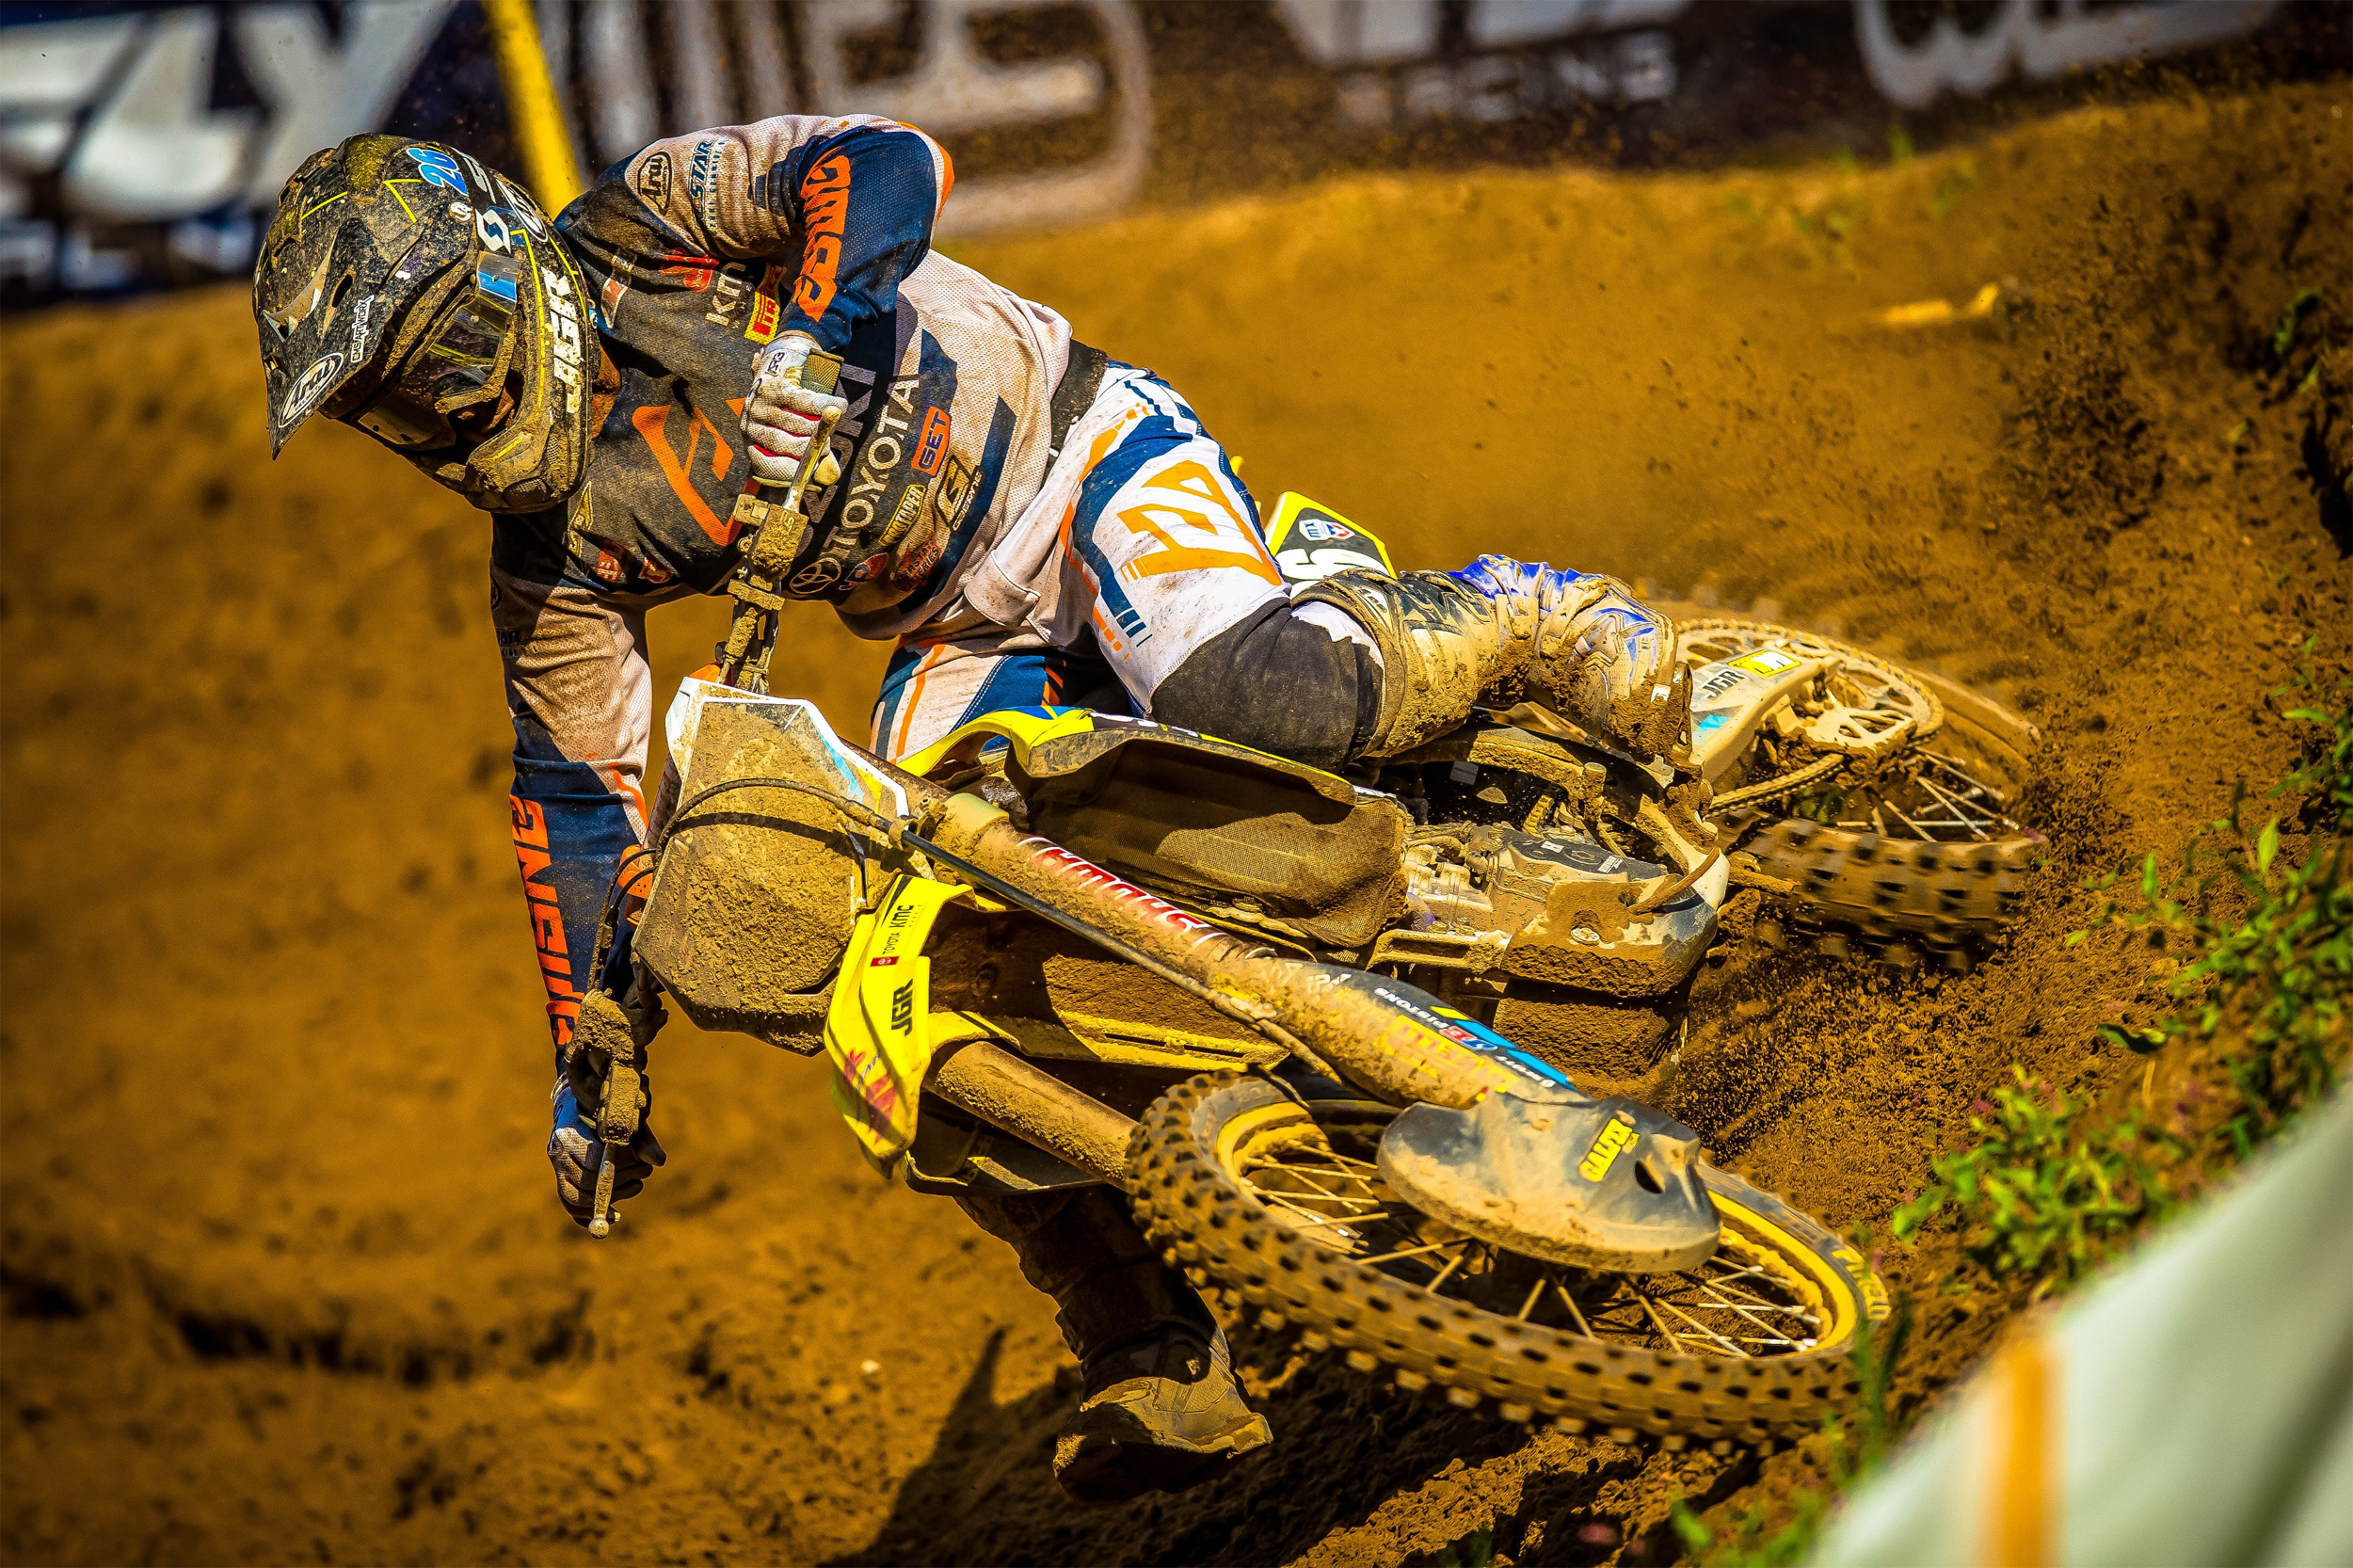 Alex Martin (#26) scores sixth overall proving speed and improved starts on his RM-Z250 - Southwick National